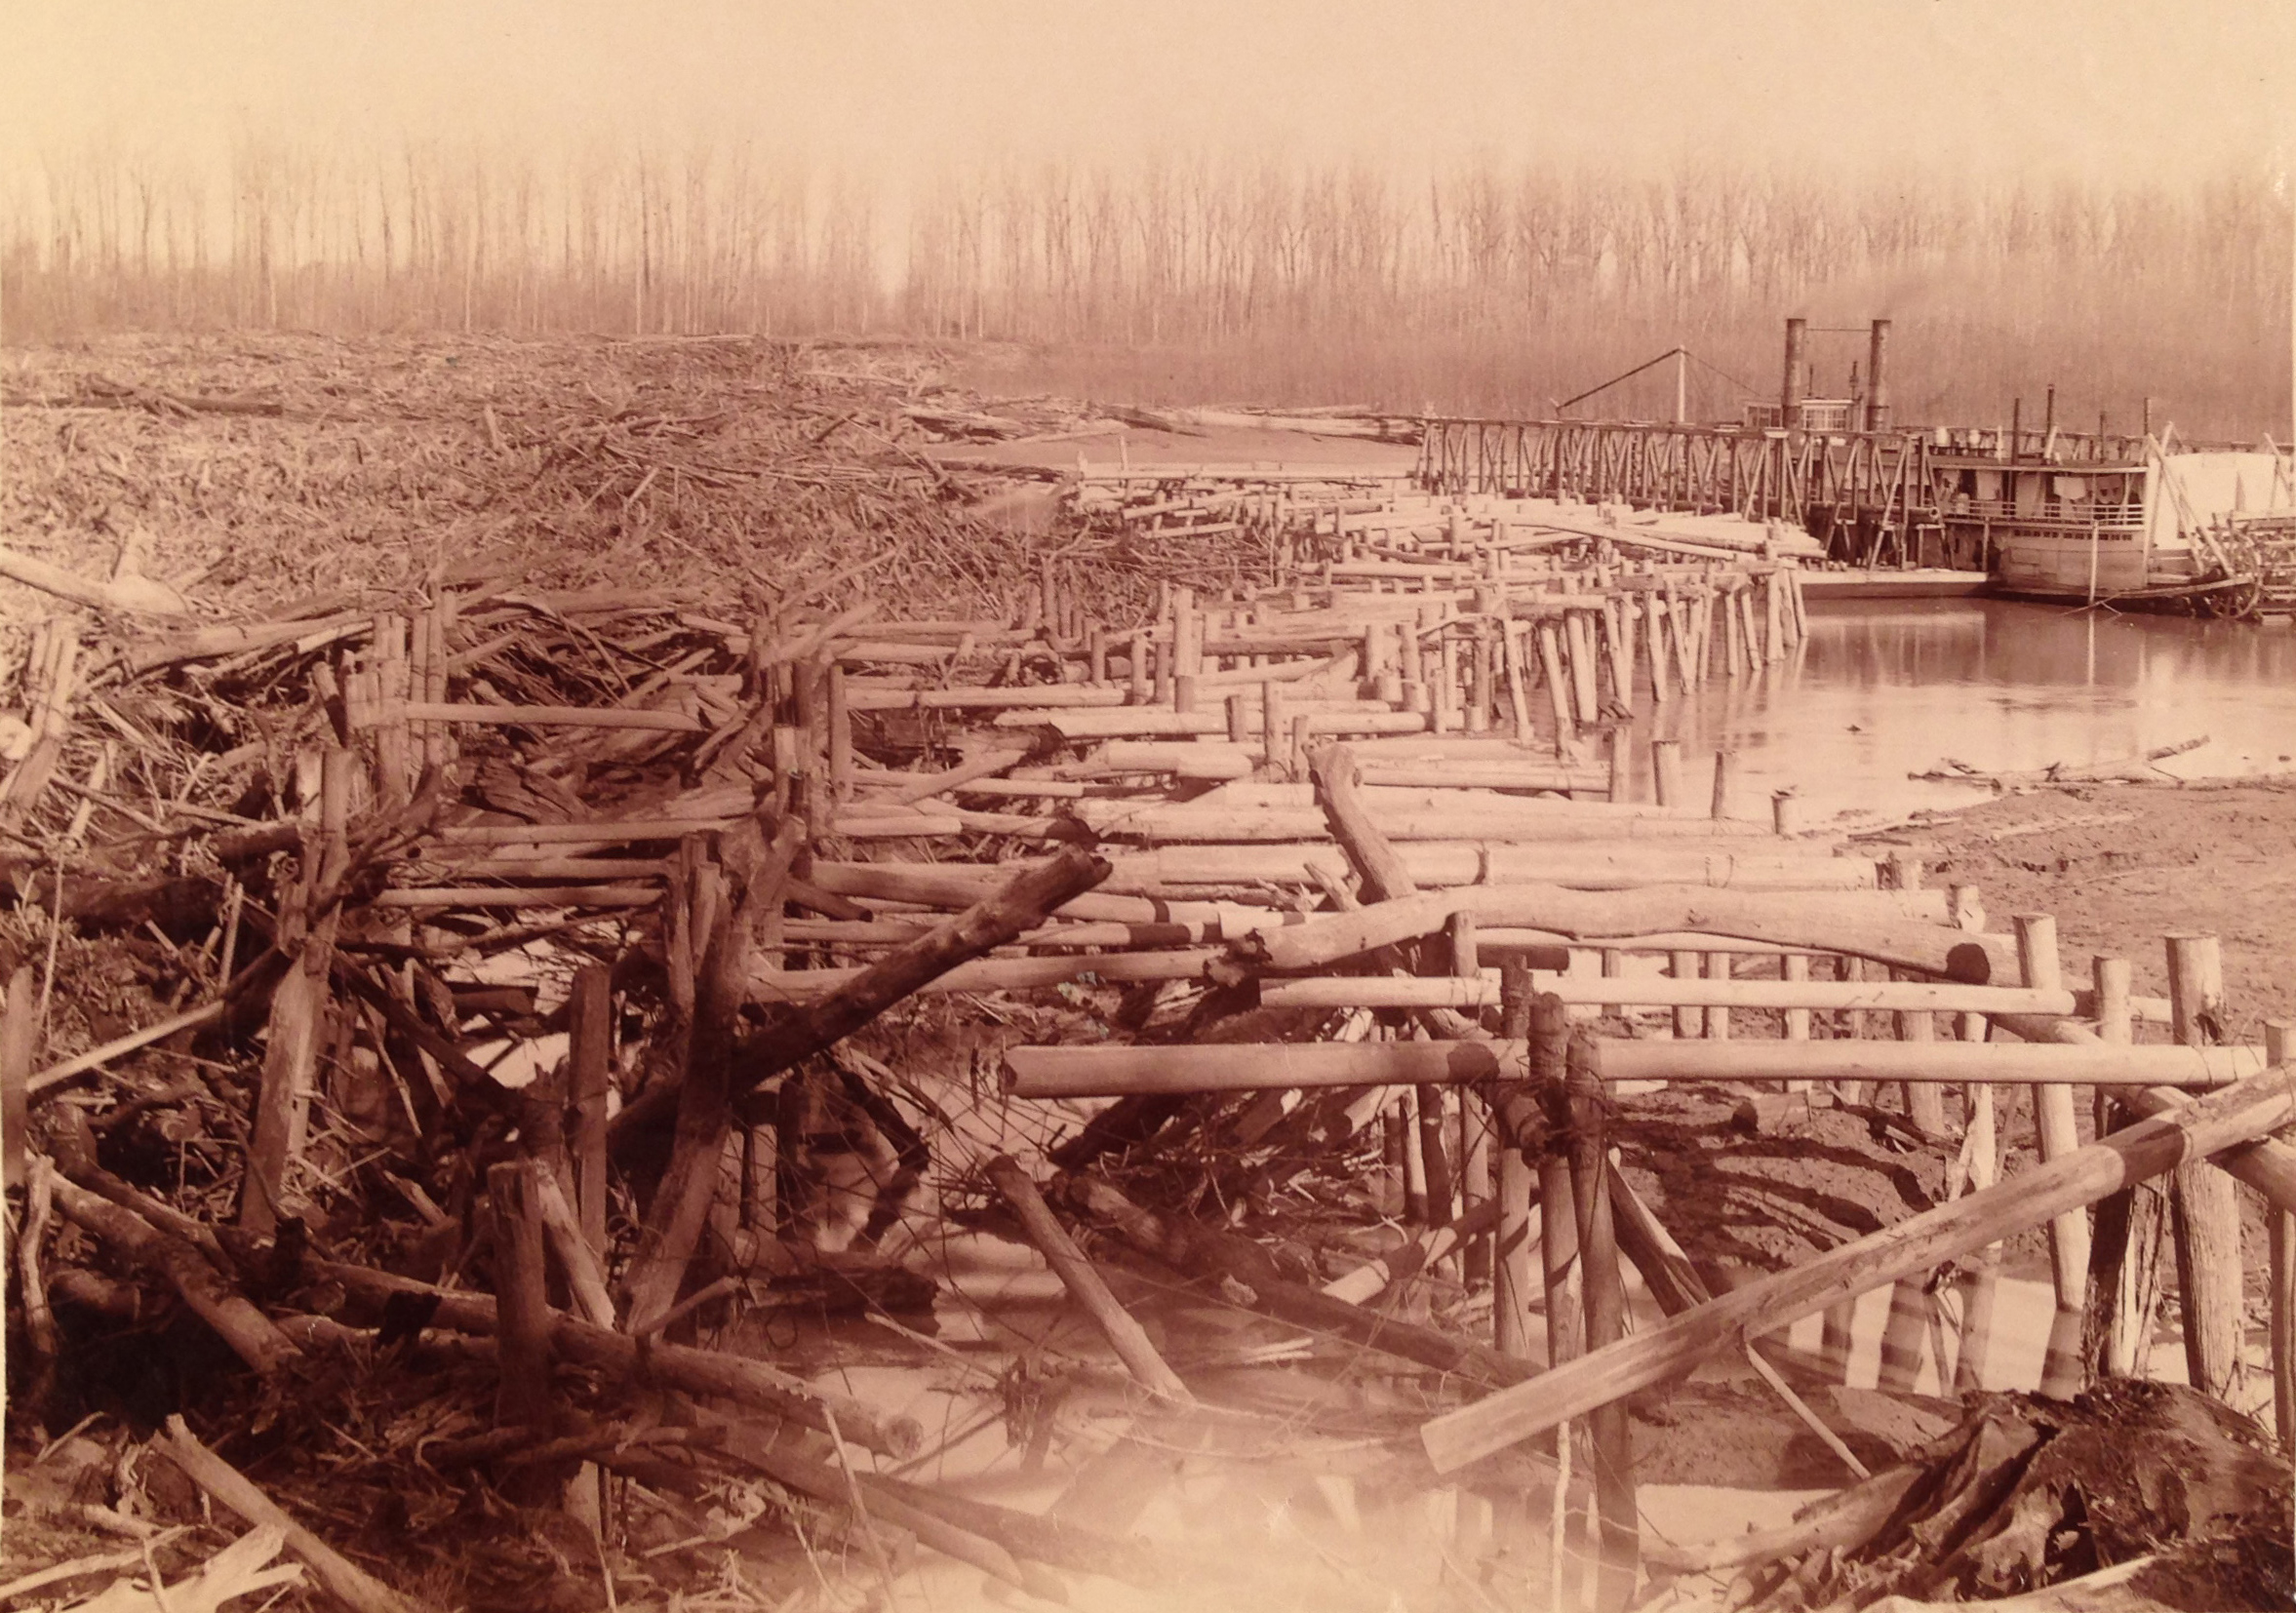 1880s photograph of cottonwood snag-catchers built by the Corps of Engineers on the Mississippi River near Plum Point to catch debris drifting downstream. (Photographs and Prints Division, National Archives and Records Administration, College Park, Maryland)